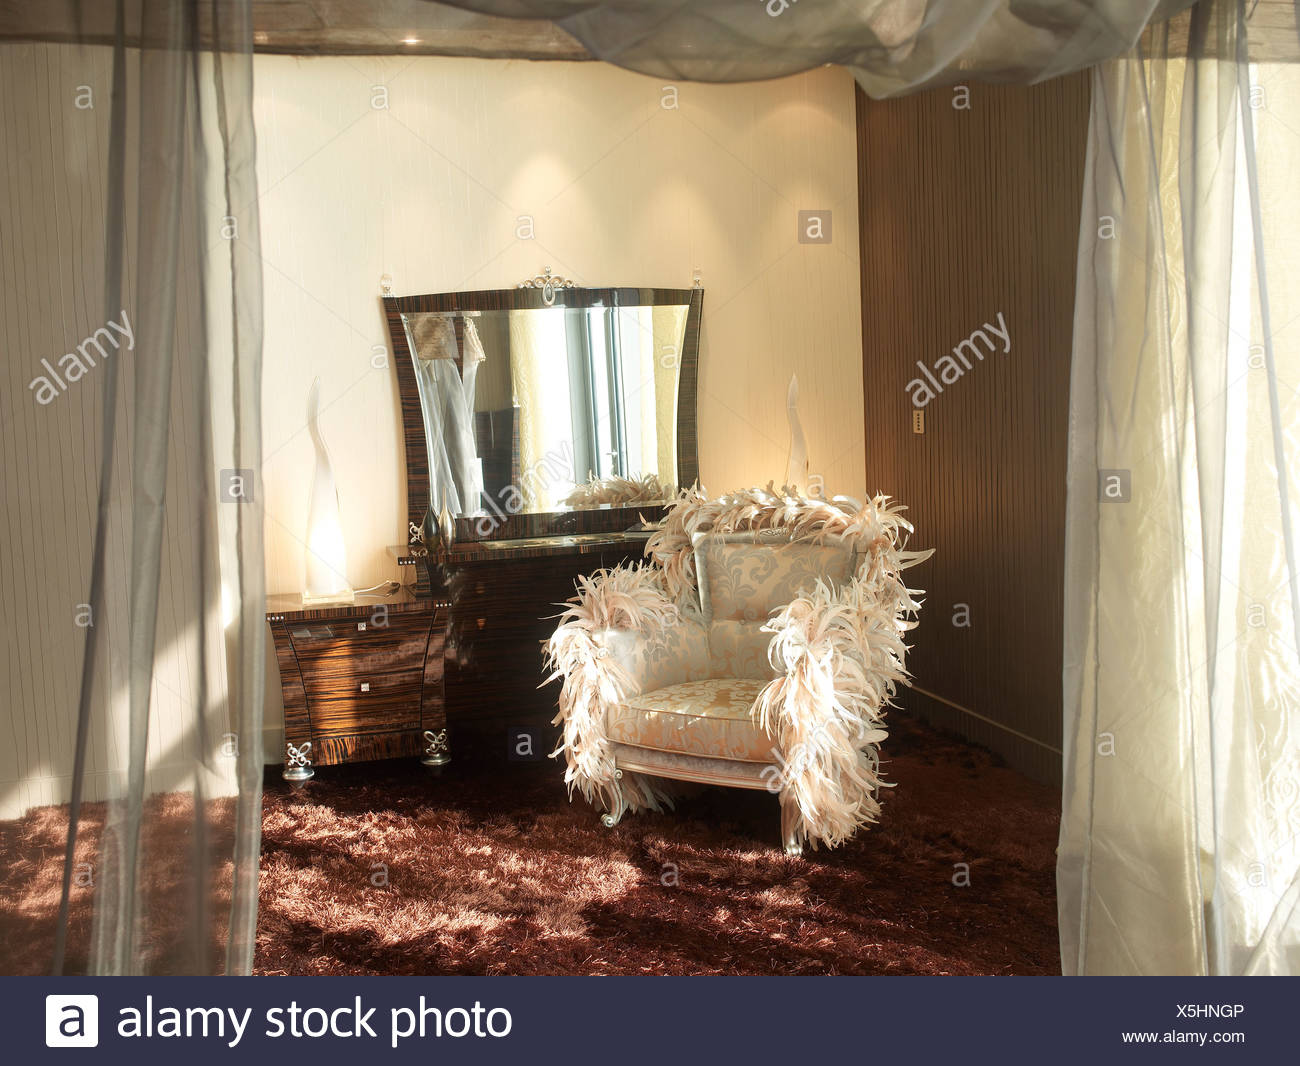 Luxurious chair and vanity in a Dubai-style bedroom - Stock Image